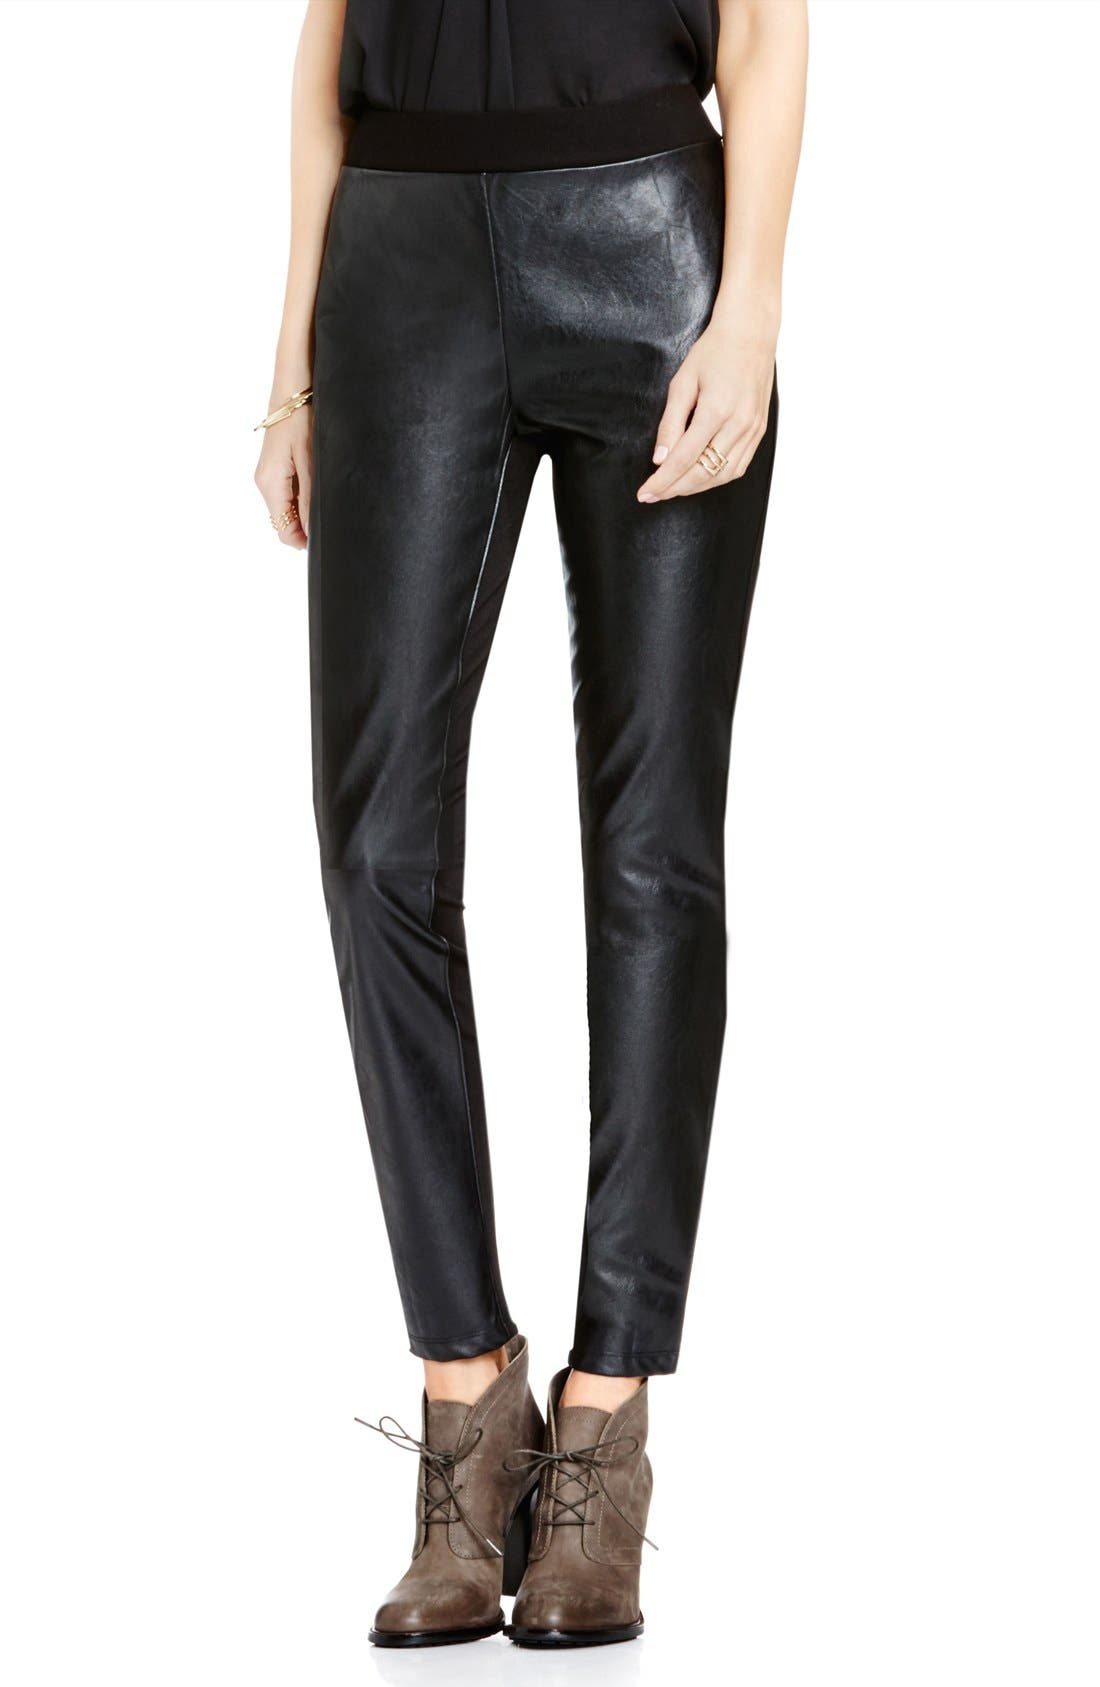 Alternate Image 1 Selected - Two by Vince Camuto Faux Leather & Ponte Leggings